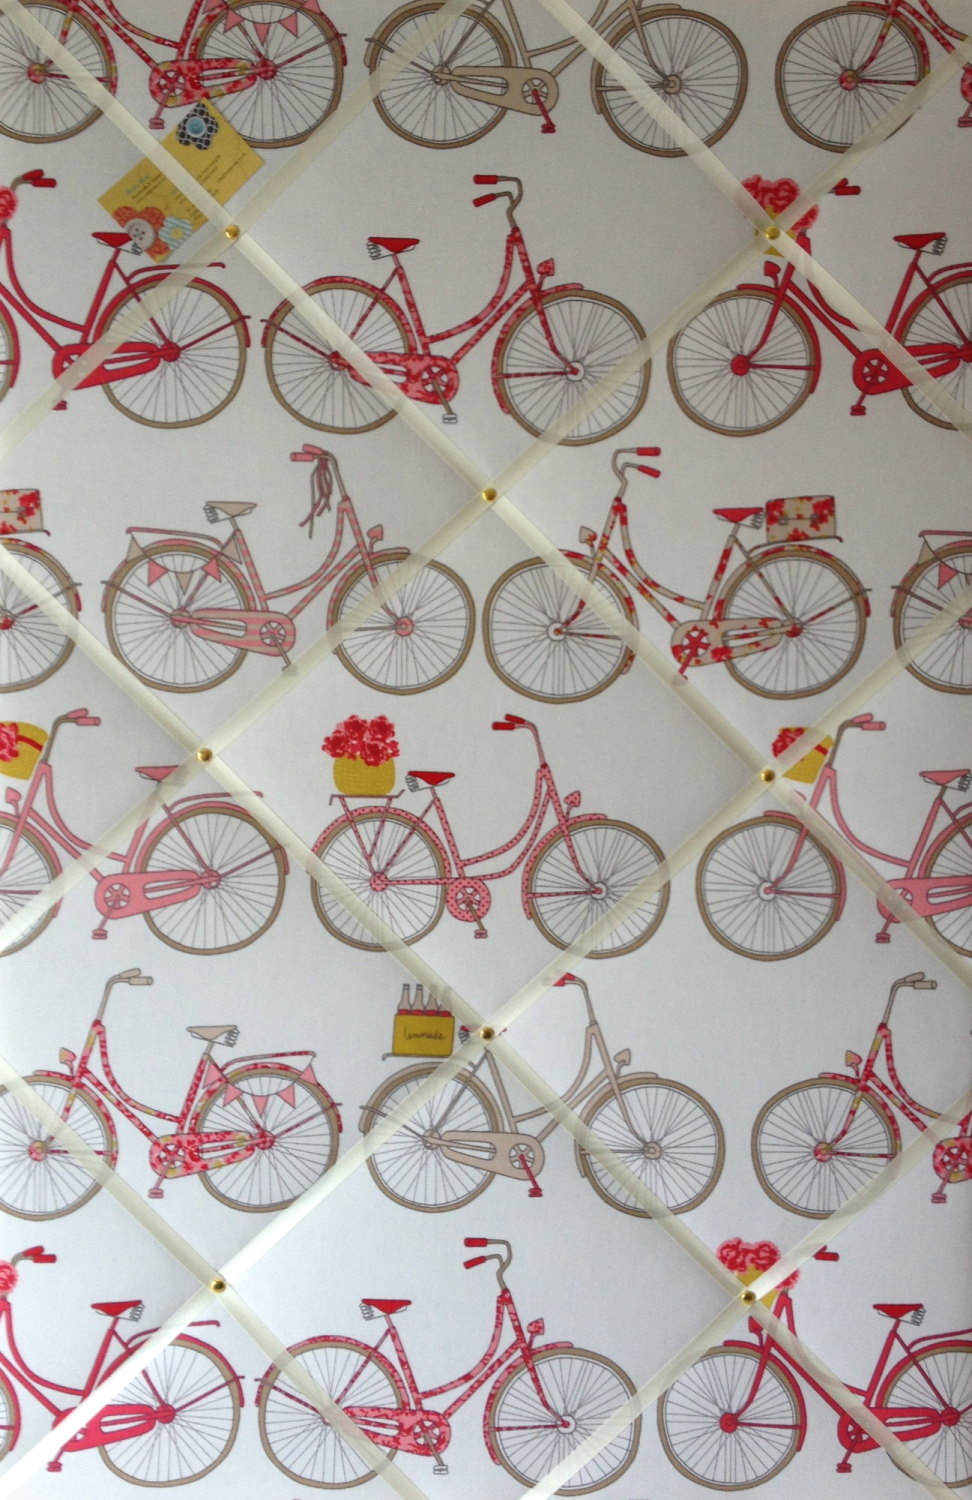 Extra Large 90x60cm Ashley Wilde Poppy Totnes Cycling Bike Fabric Pin / Mem